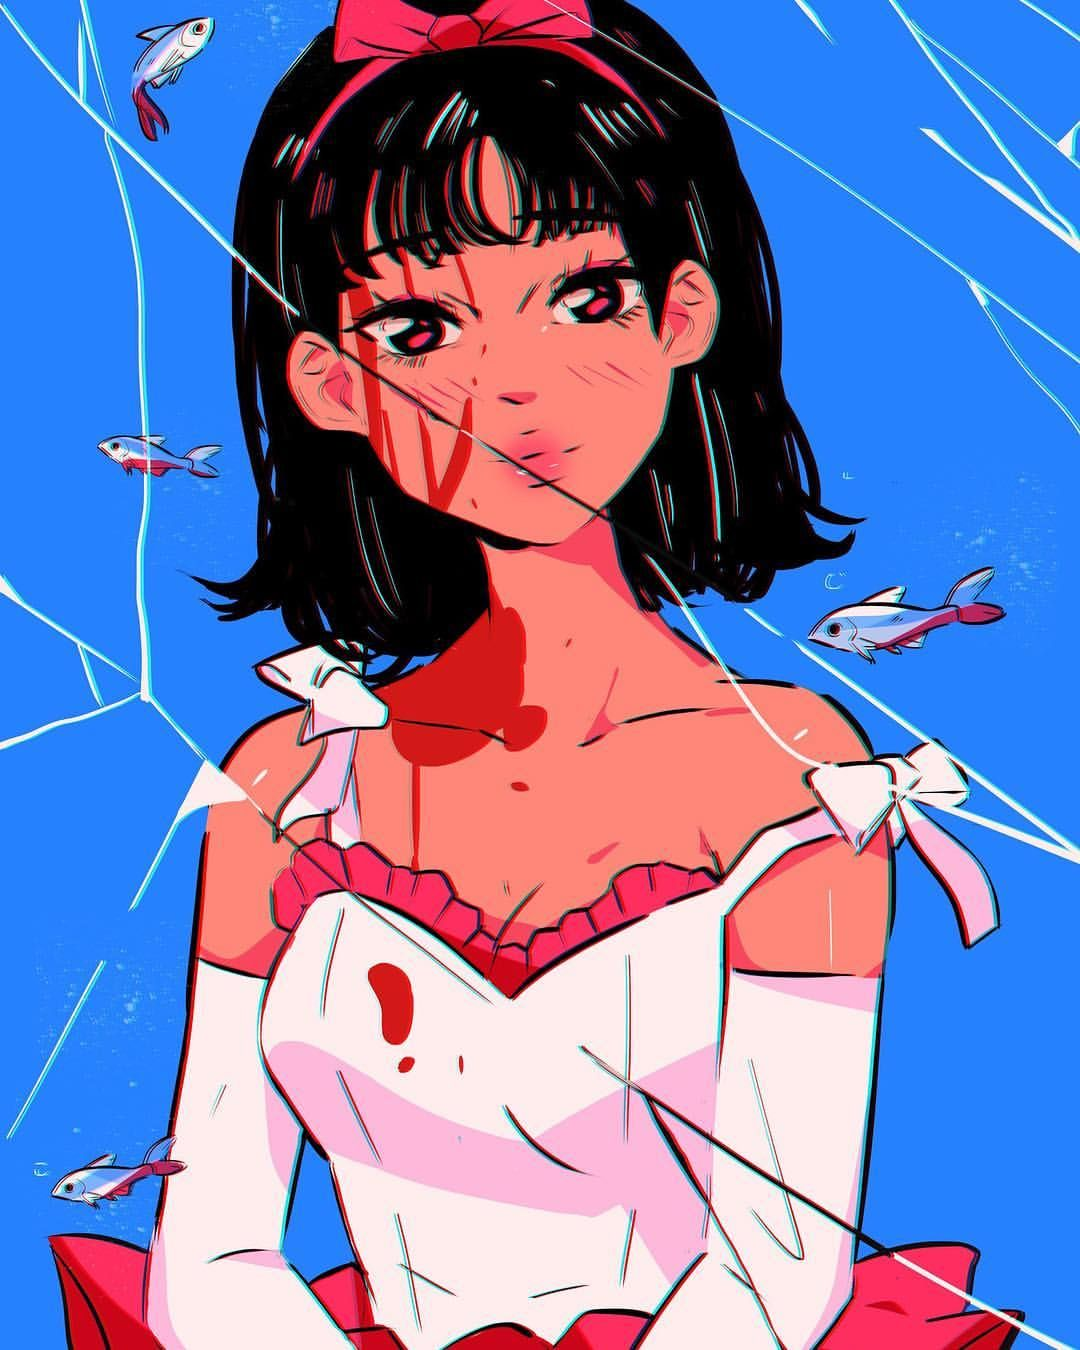 No I M The Real Thing Here S Mima From Perfect Blue Some Of You Guys Requested It Took Me Idk How Many Days To Act Cute Art Character Art Aesthetic Art